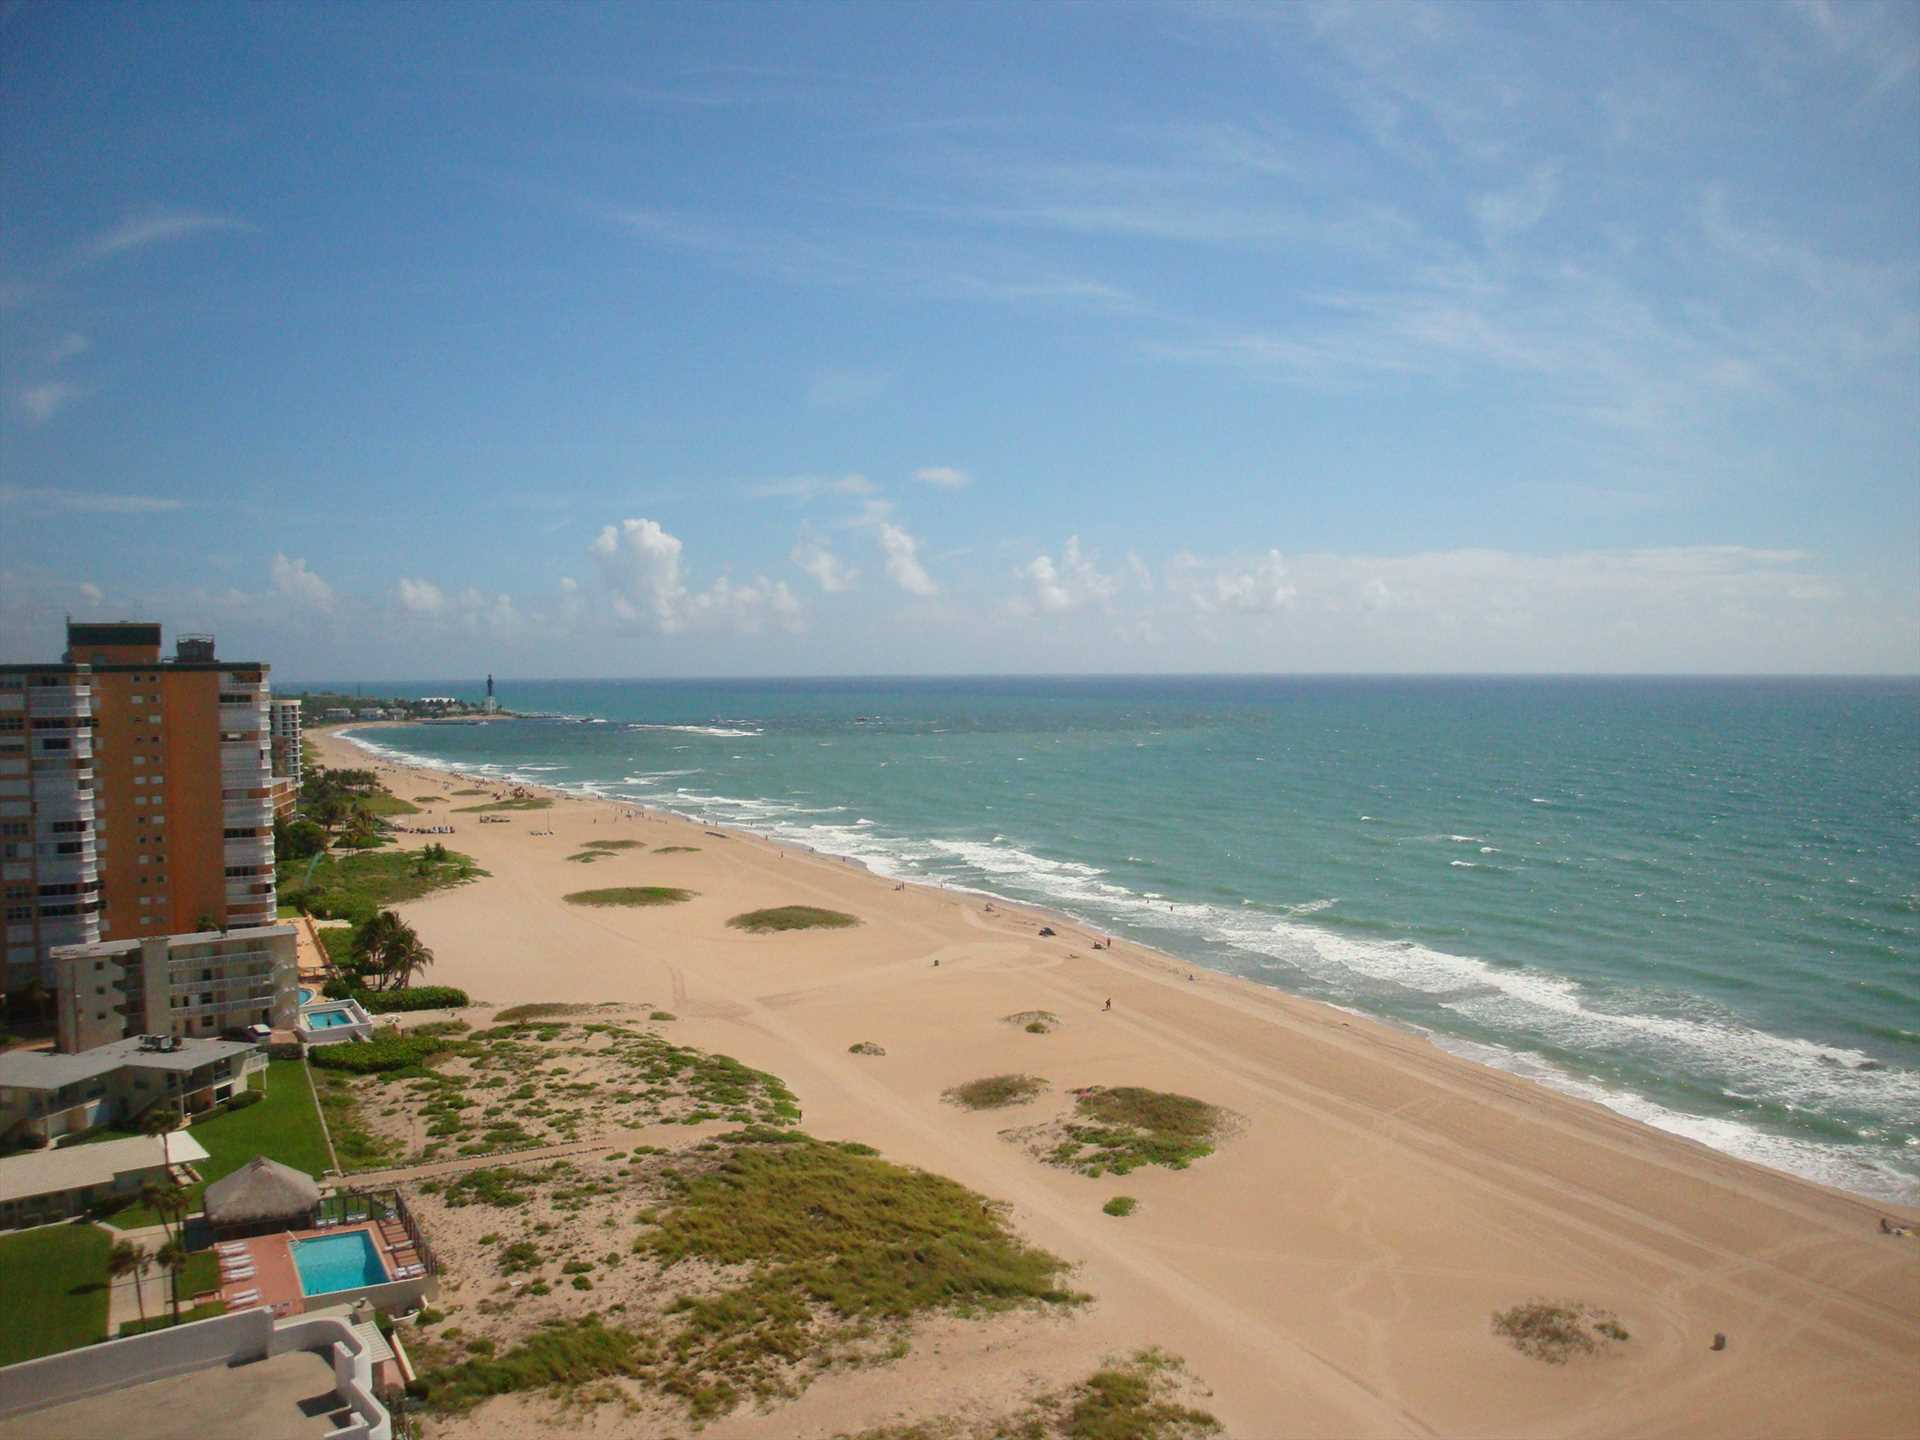 The warm ocean breezes, surf and sand await your arrival!